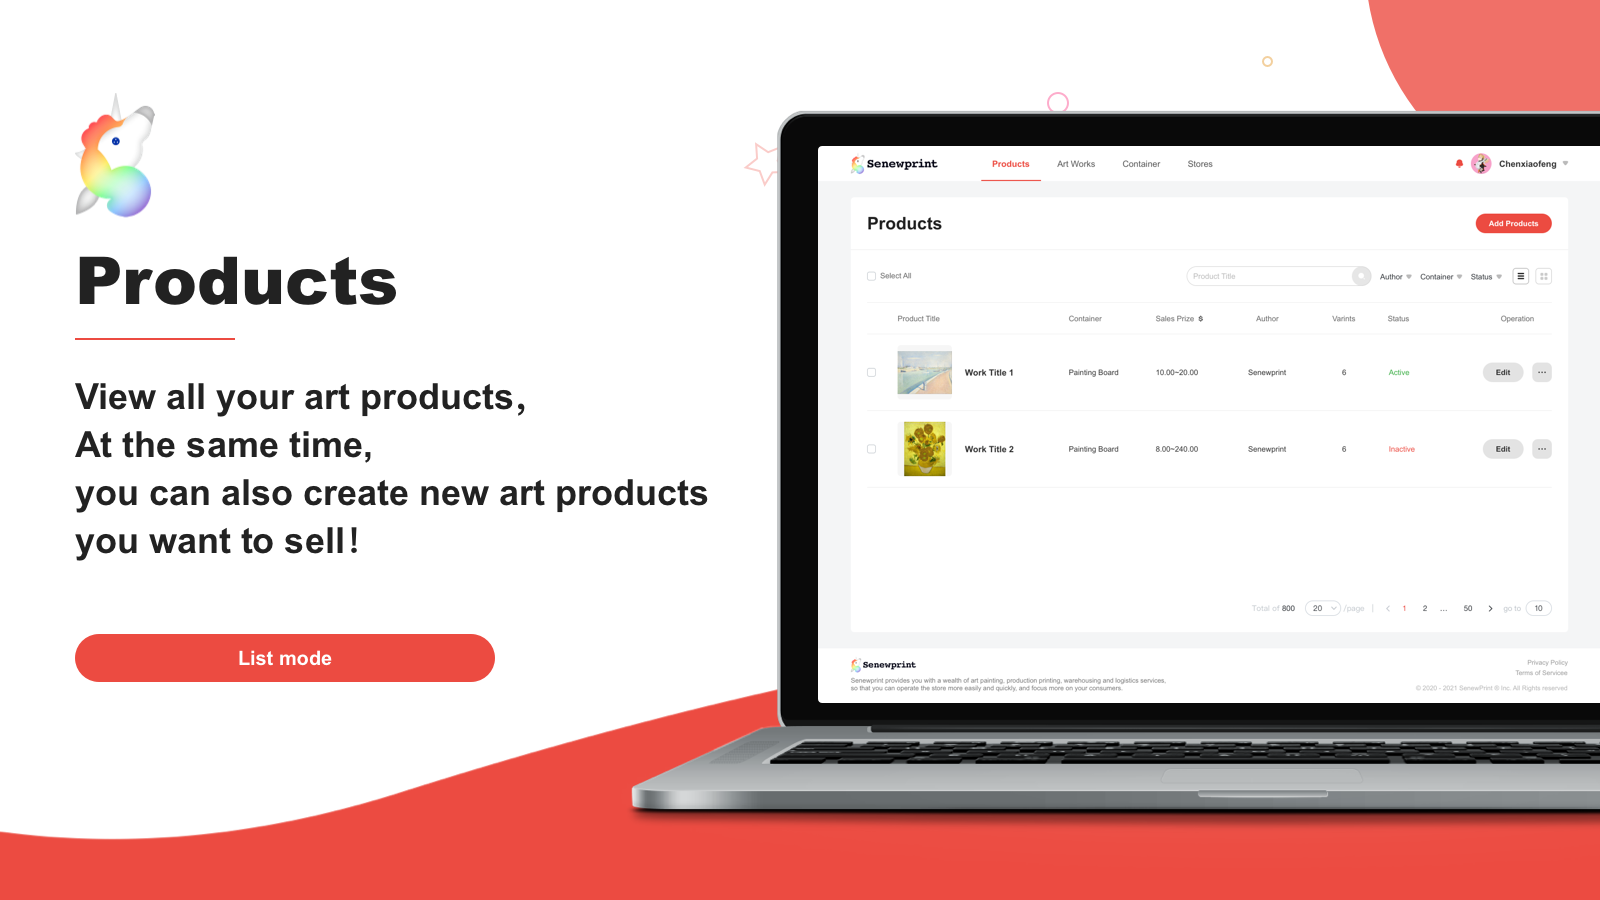 View all your art products